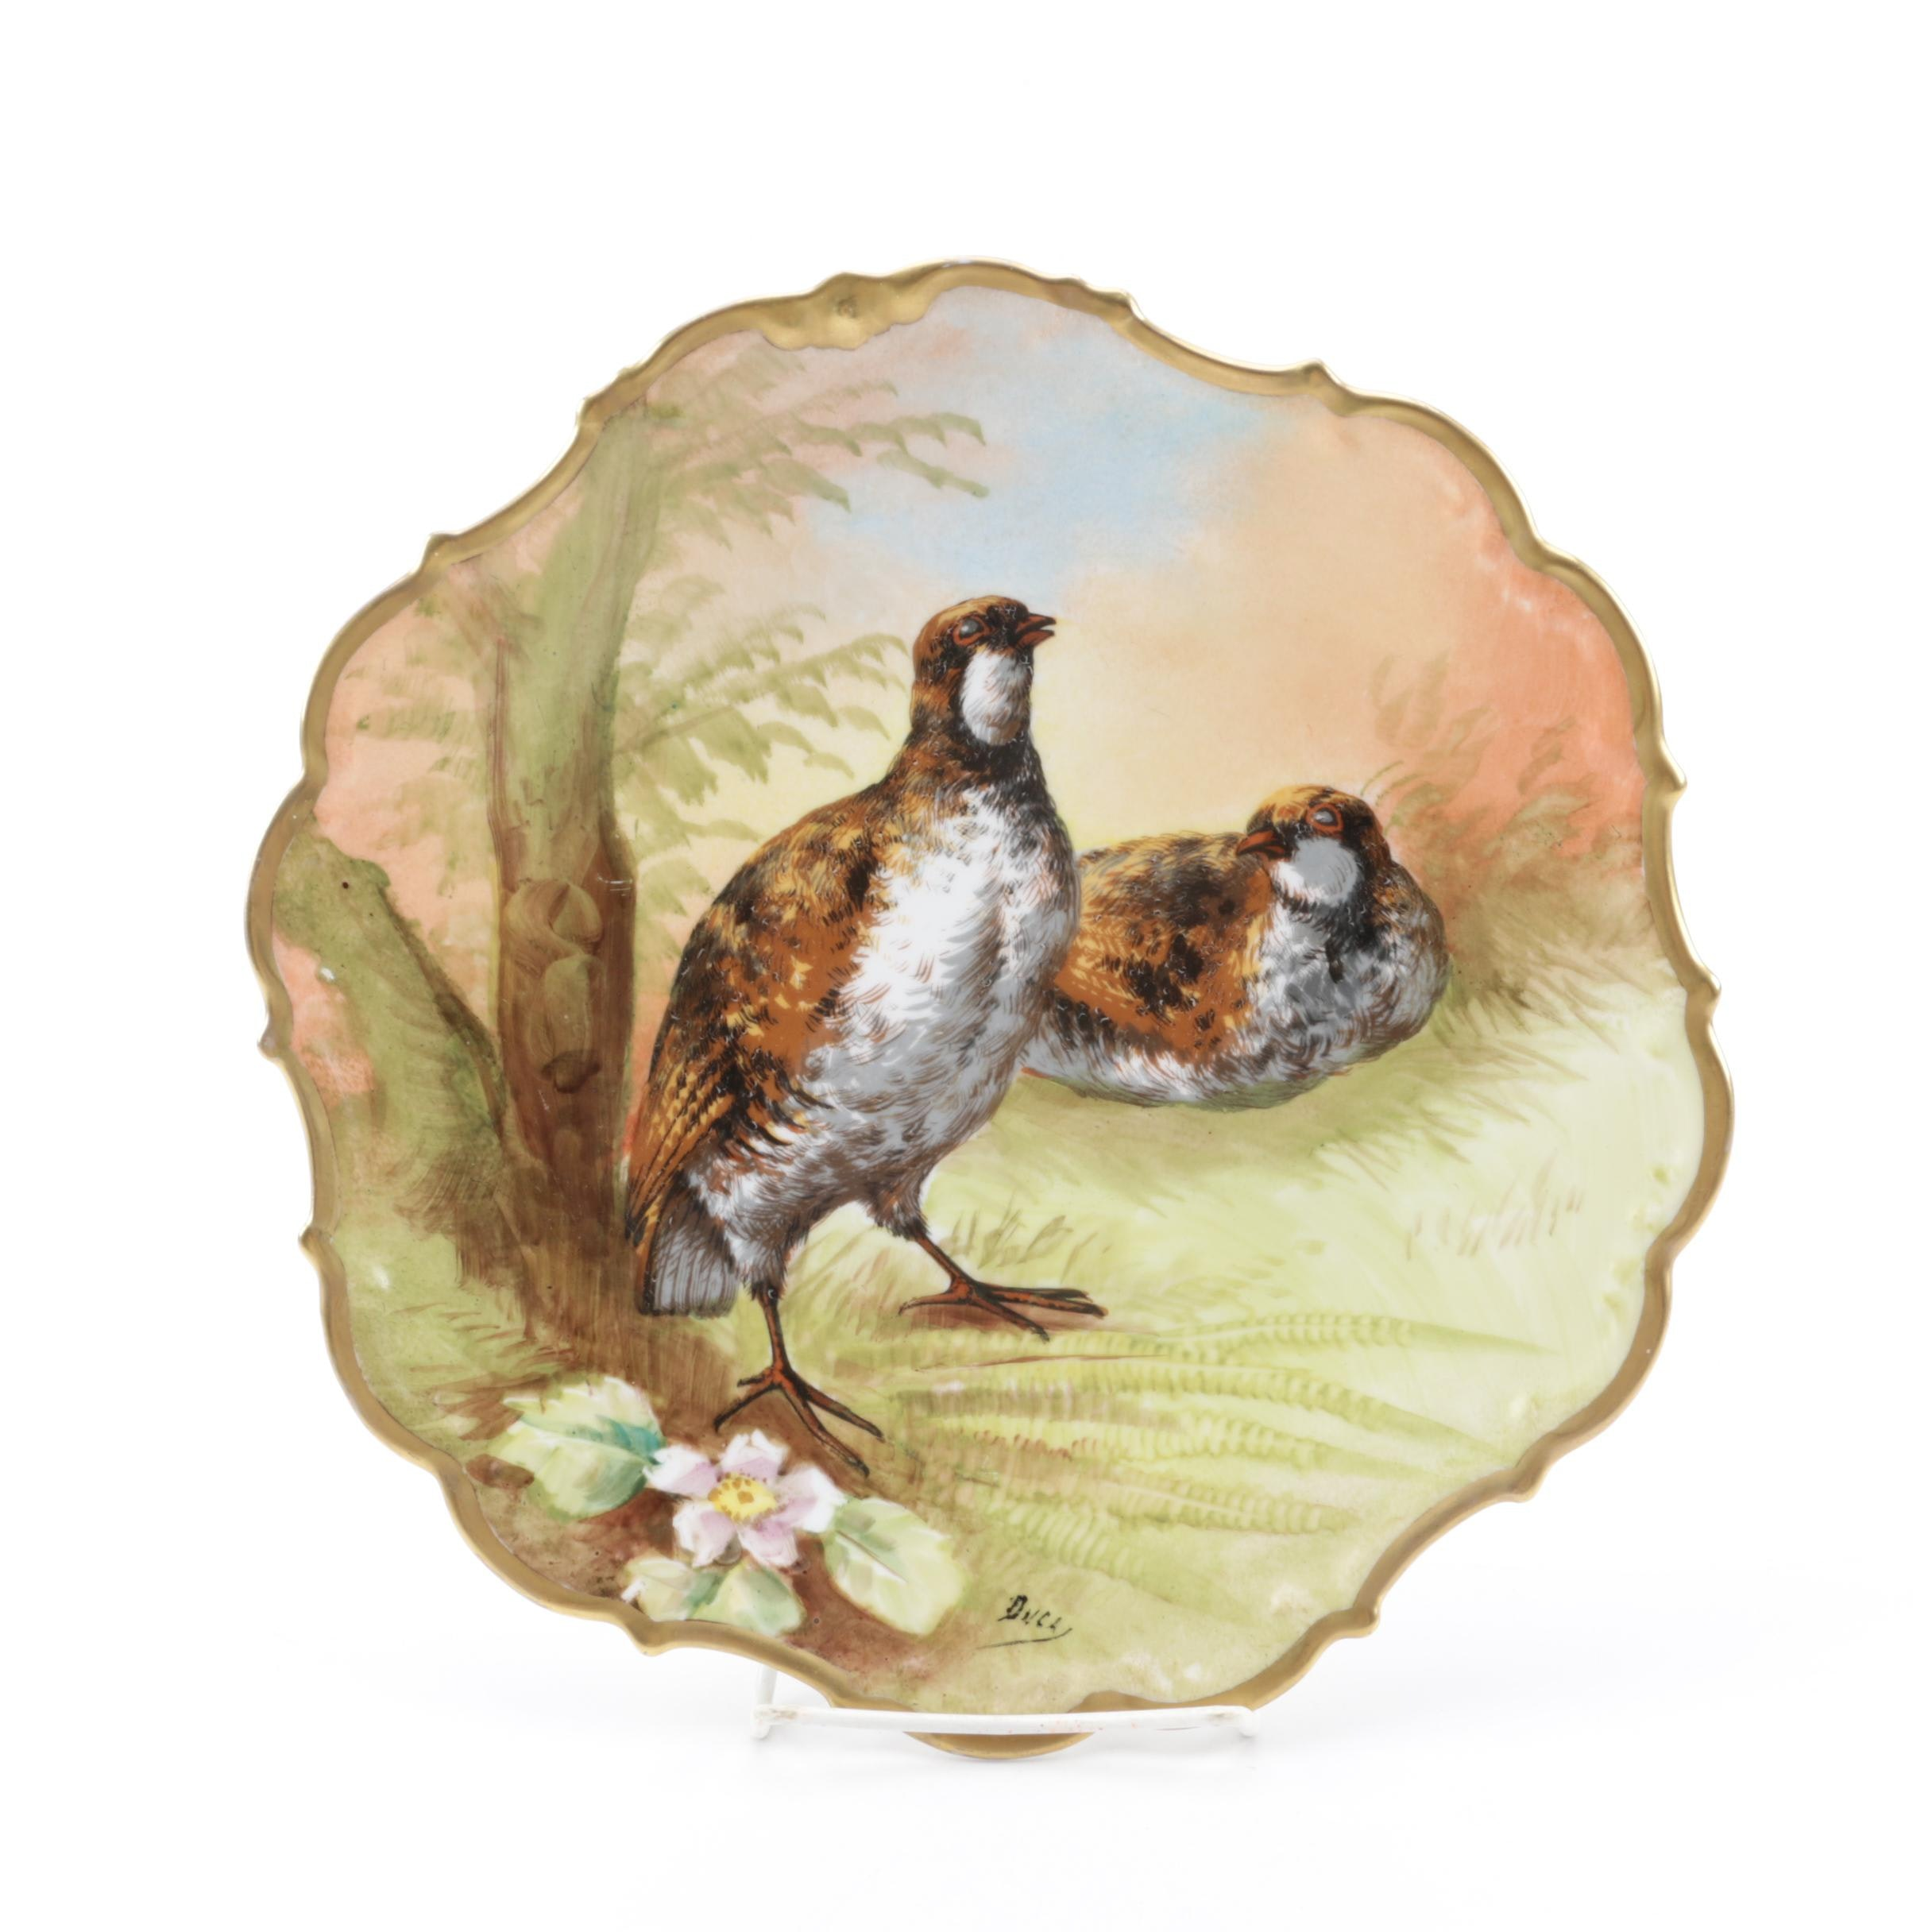 Vintage Limoges Hand-Painted Porcelain Plate with Quails